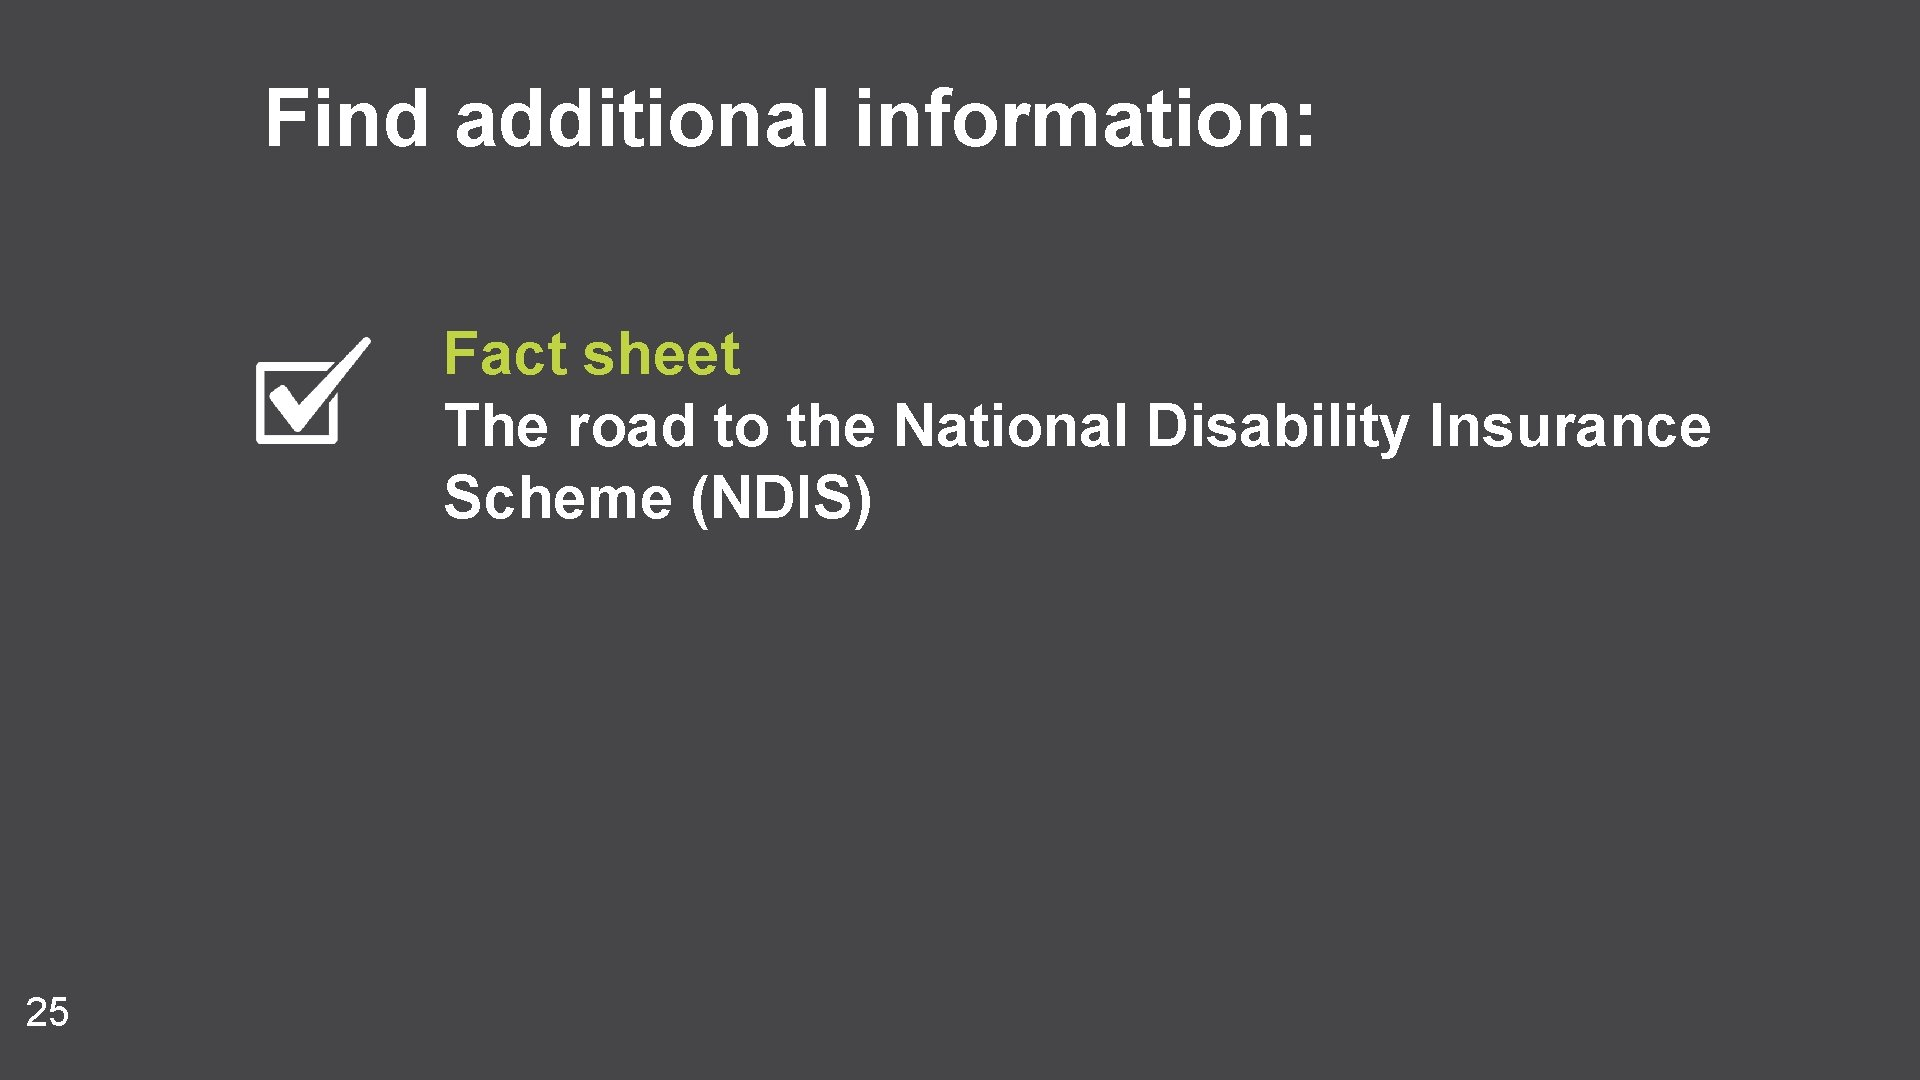 Find additional information: Fact sheet The road to the National Disability Insurance Scheme (NDIS)